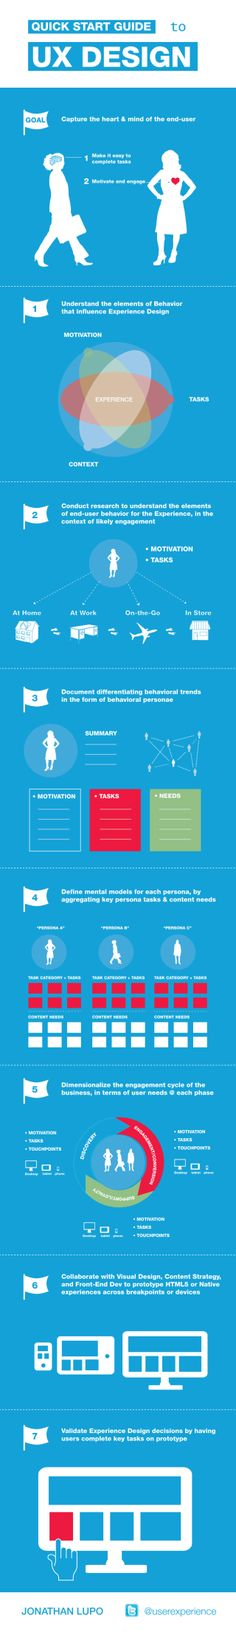 A Start Guide to UX Design | Infographic